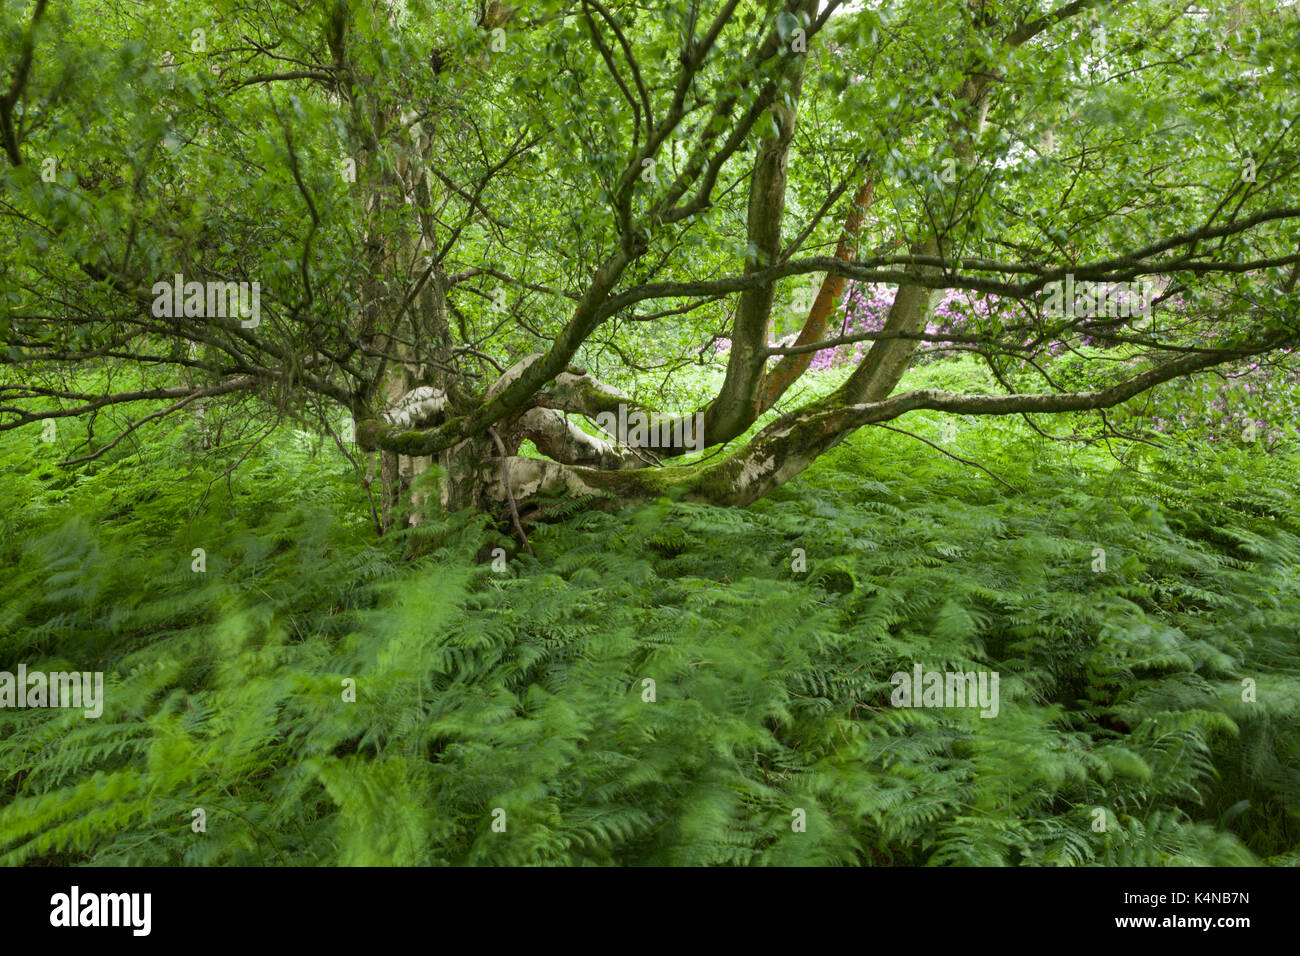 An old silver birch tree (Betula pendula) with spreading moss-covered branches growing among bracken and rhododendron's, Wolferton, Norfolk, England. - Stock Image